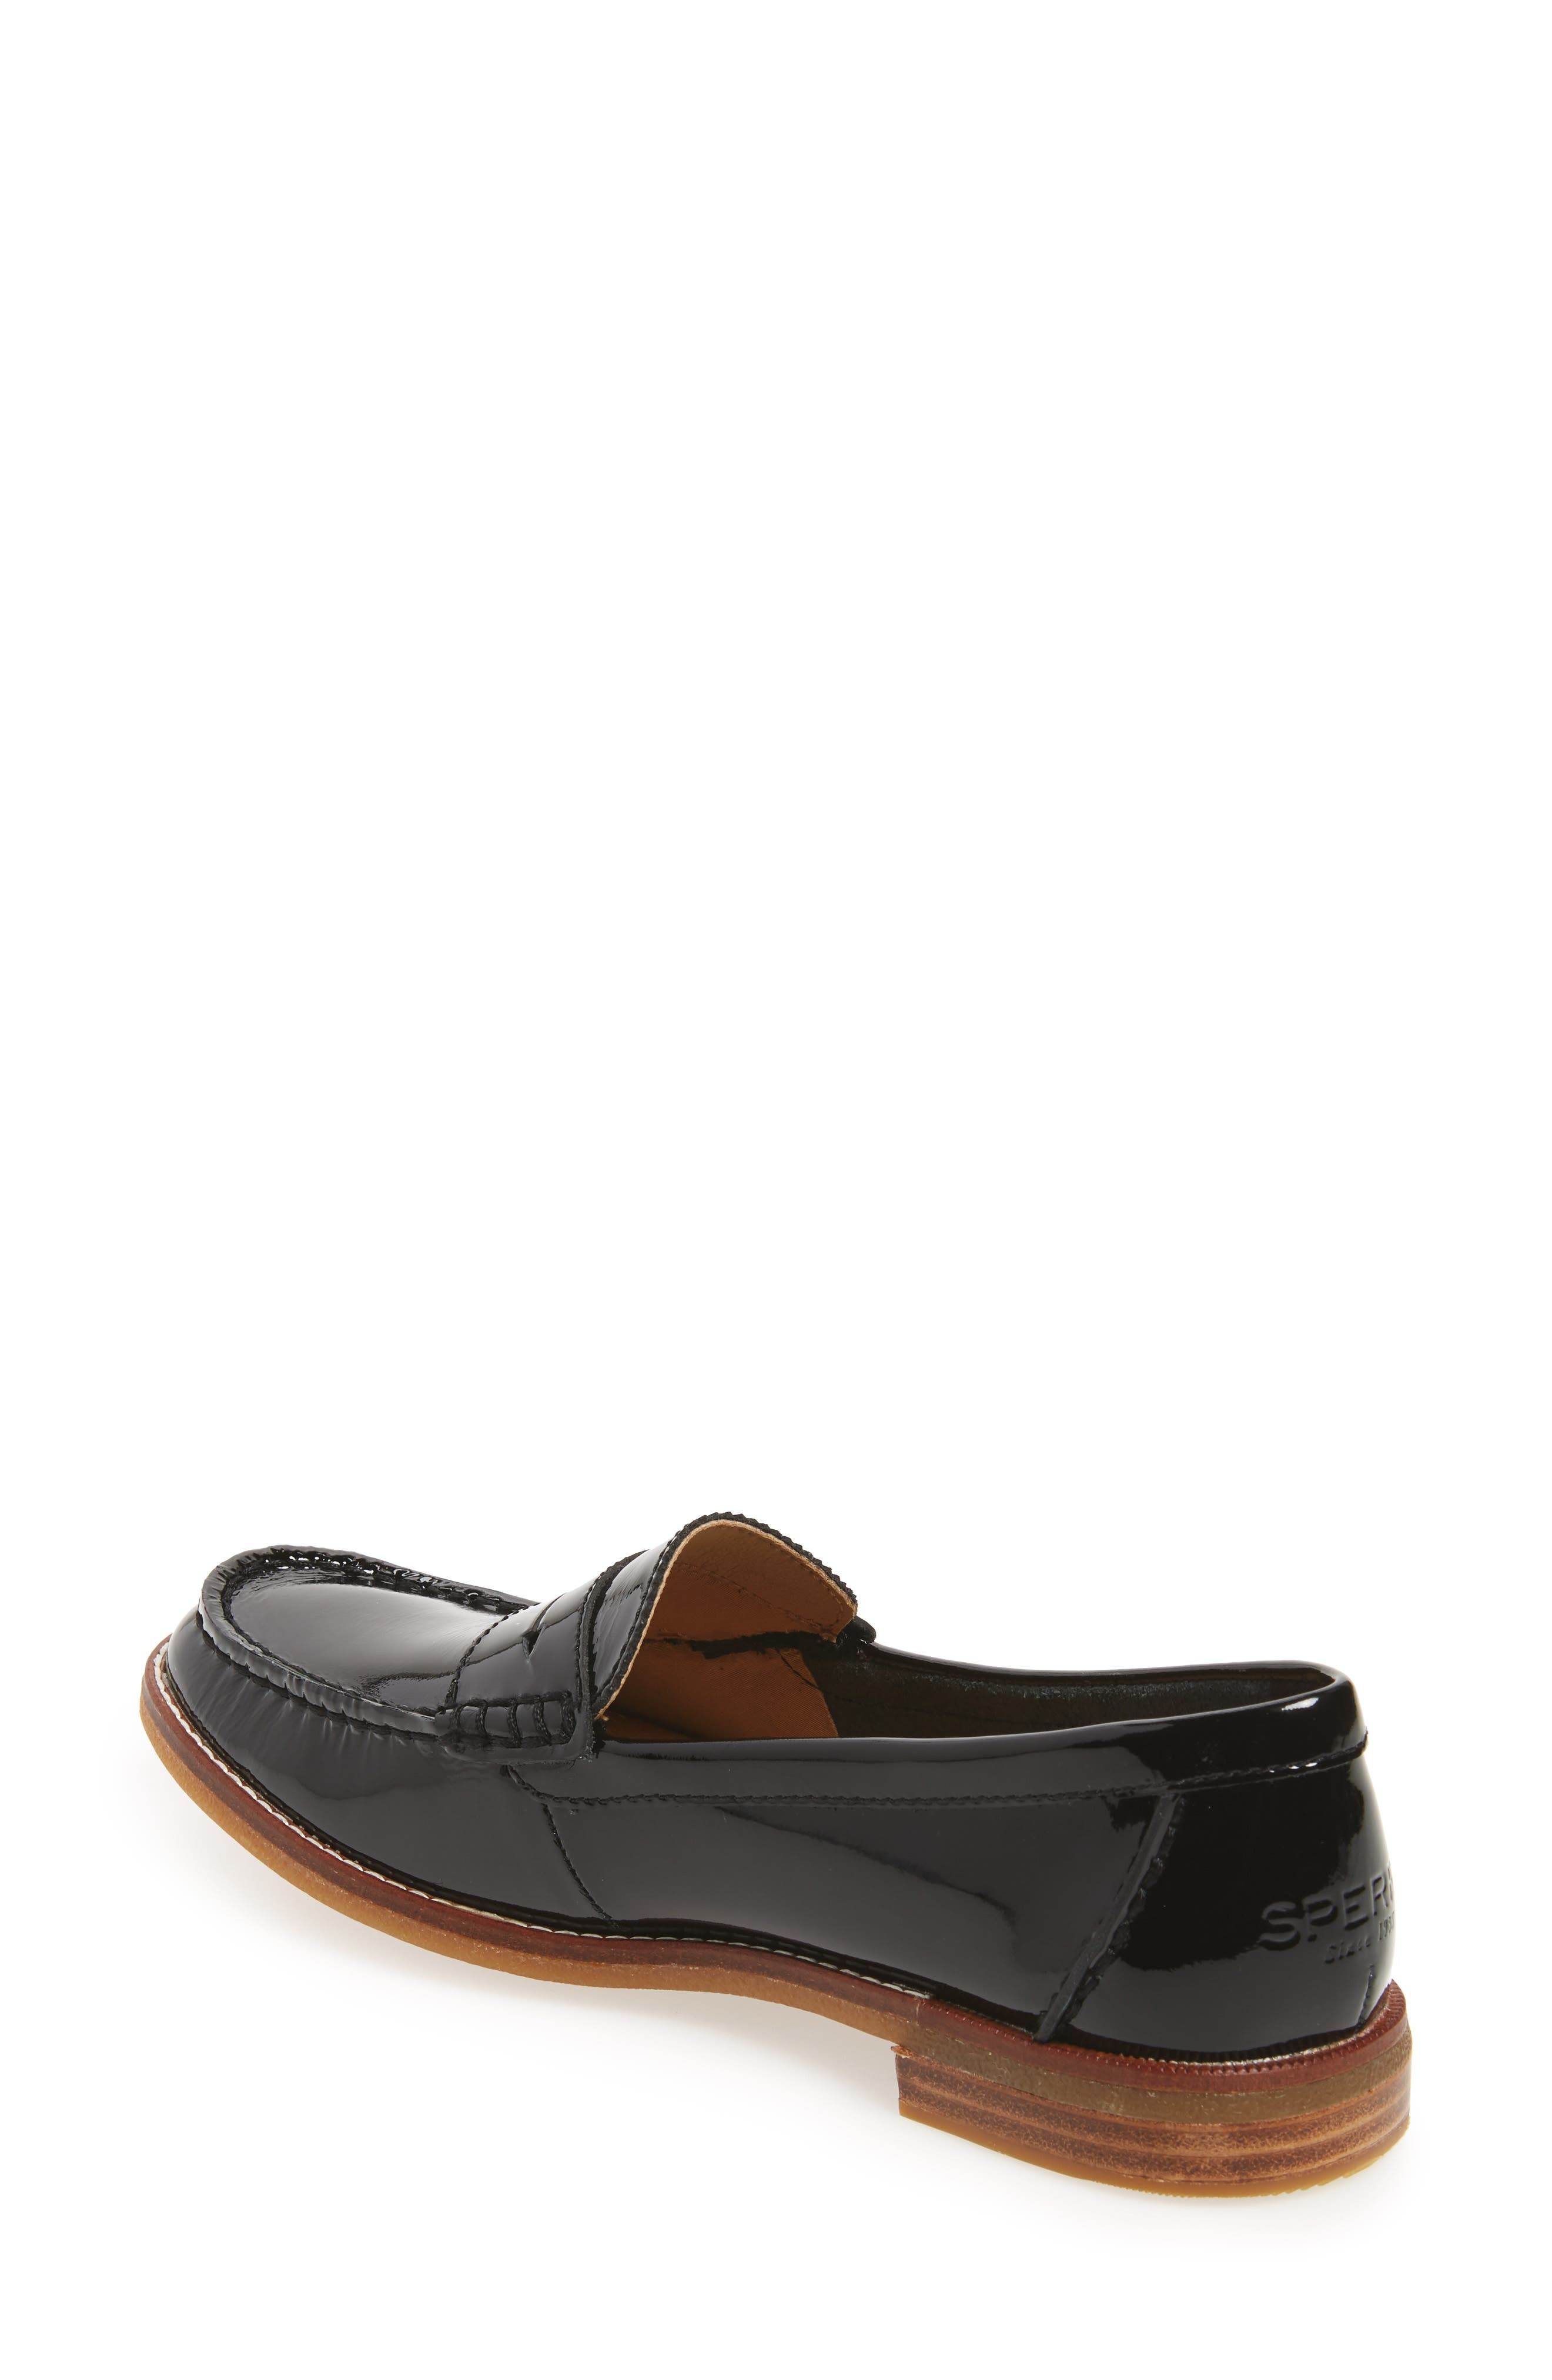 Seaport Penny Loafer,                             Alternate thumbnail 2, color,                             BLACK PATENT LEATHER